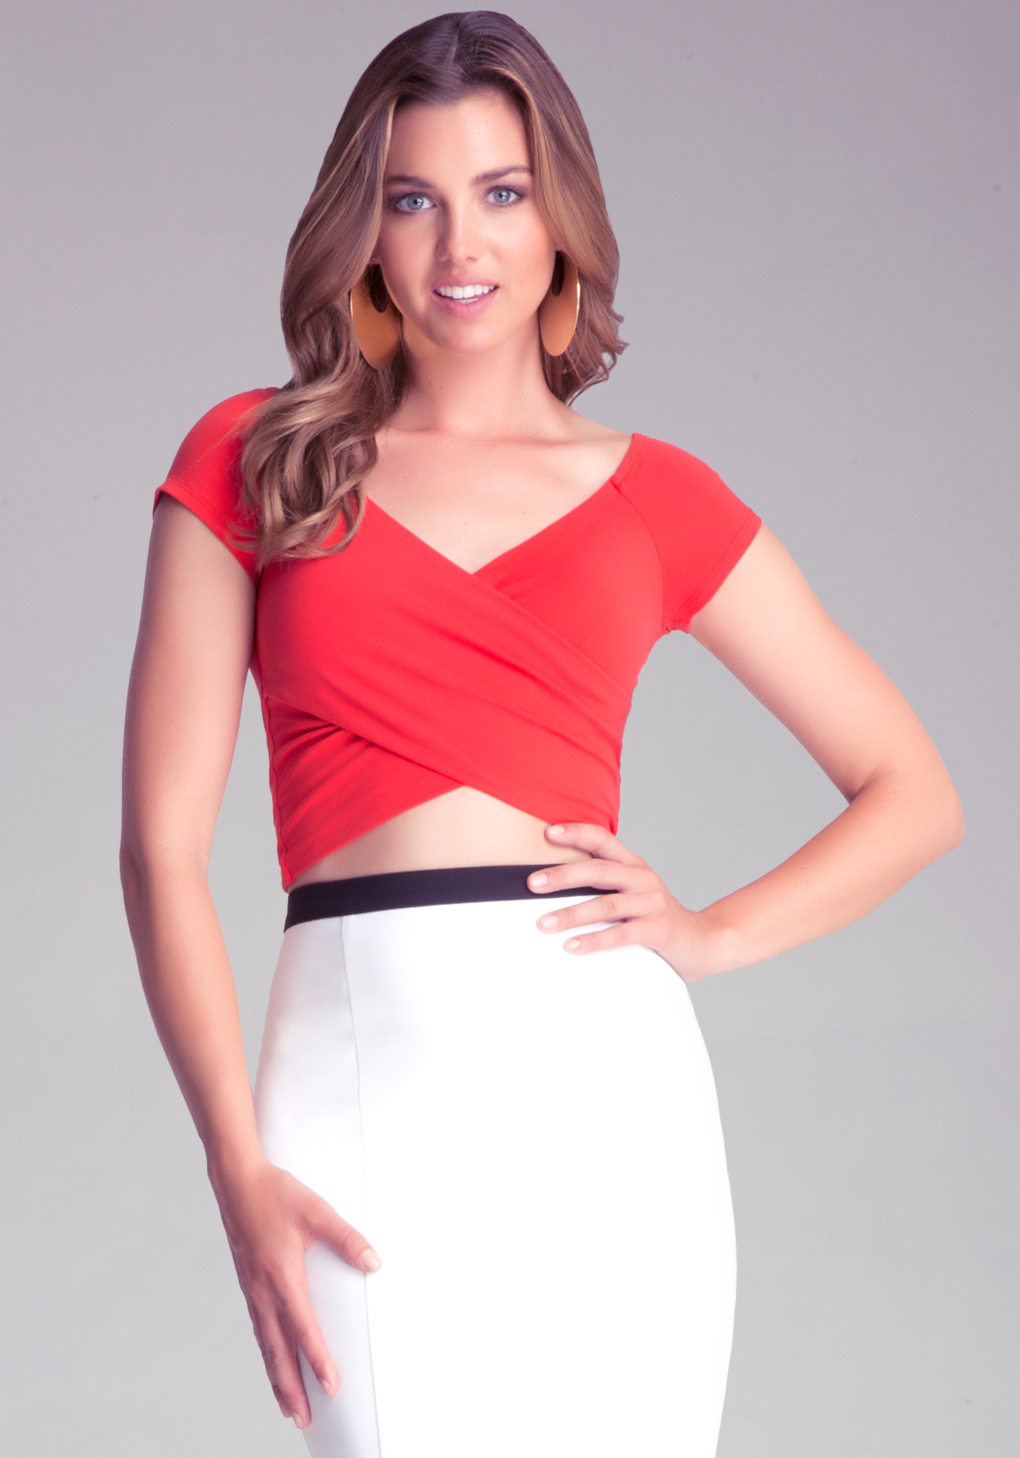 998b1b09c806 Images of Red Off The Shoulder Crop Top - All about Fashions